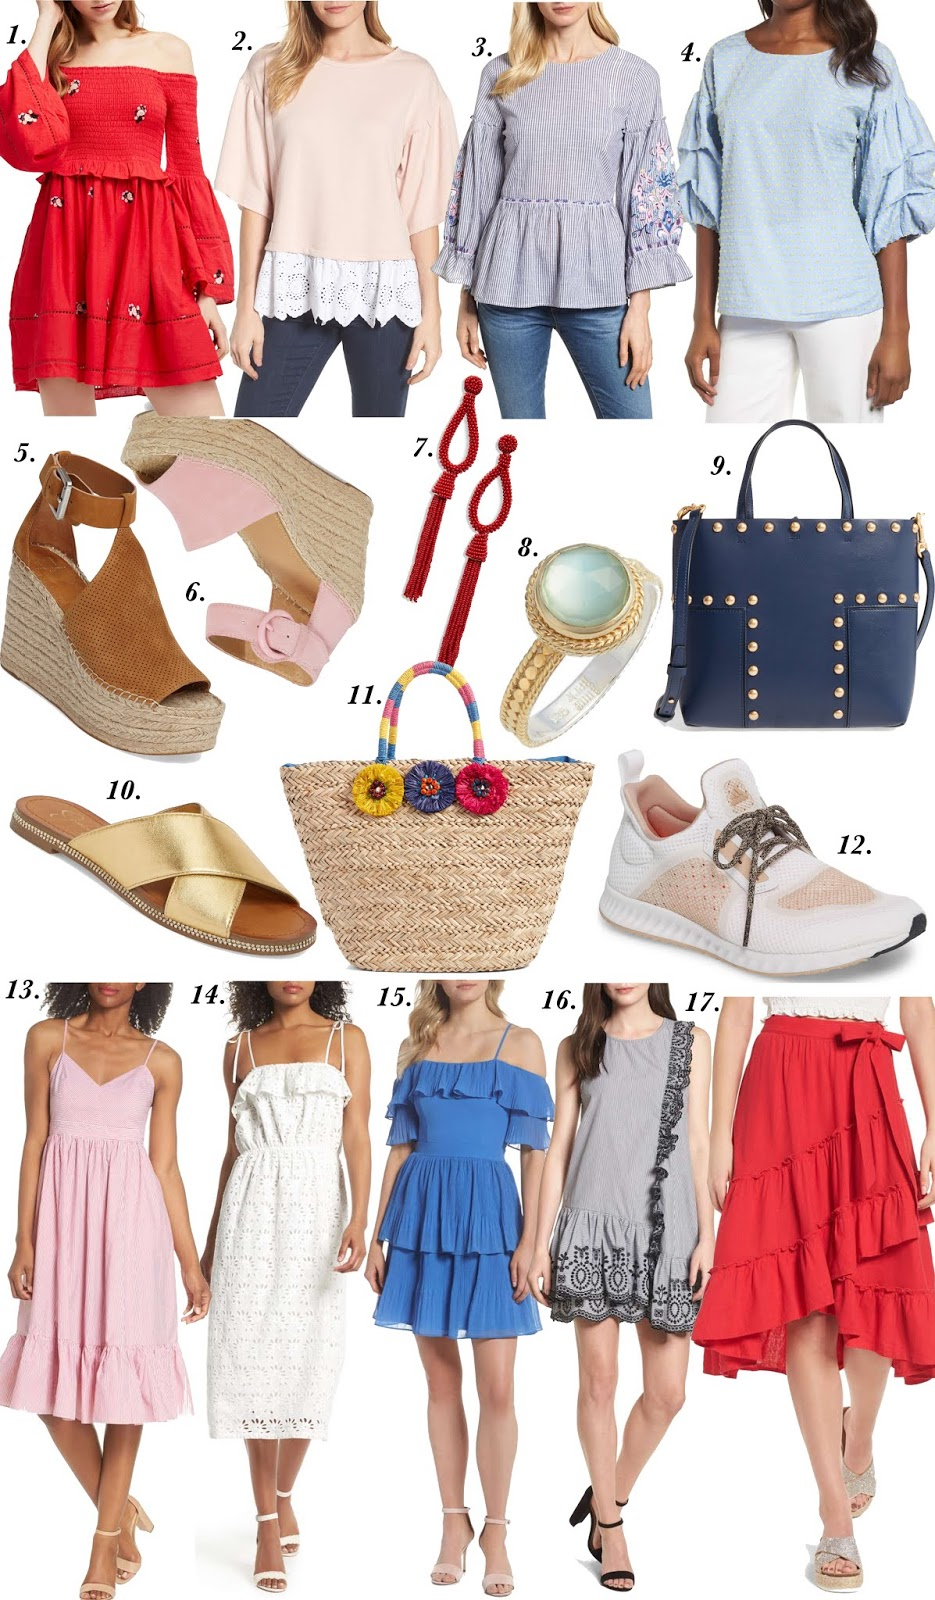 Nordstrom Half Yearly Sale Picks for Women - Something Delightful Blog